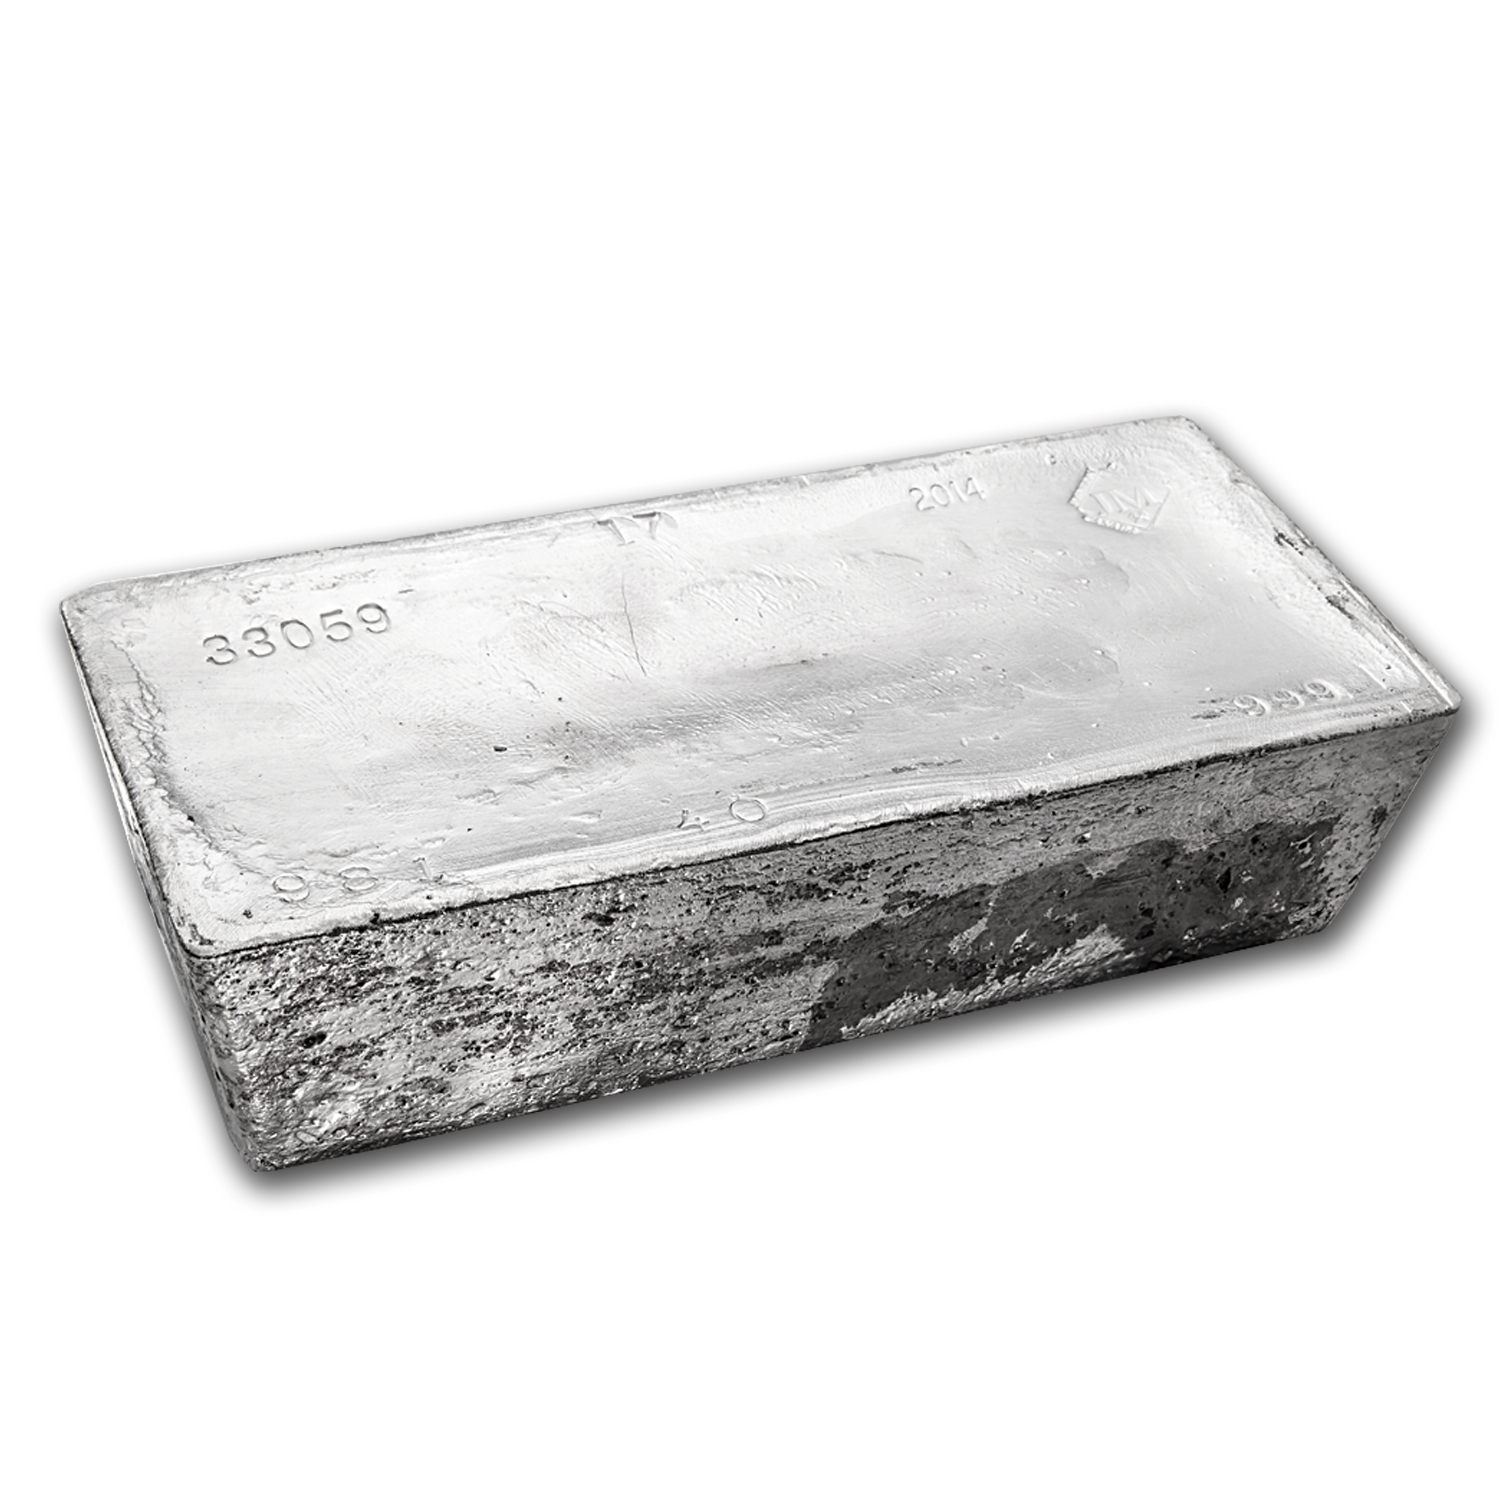 956.40 oz Silver Bars - Johnson Matthey